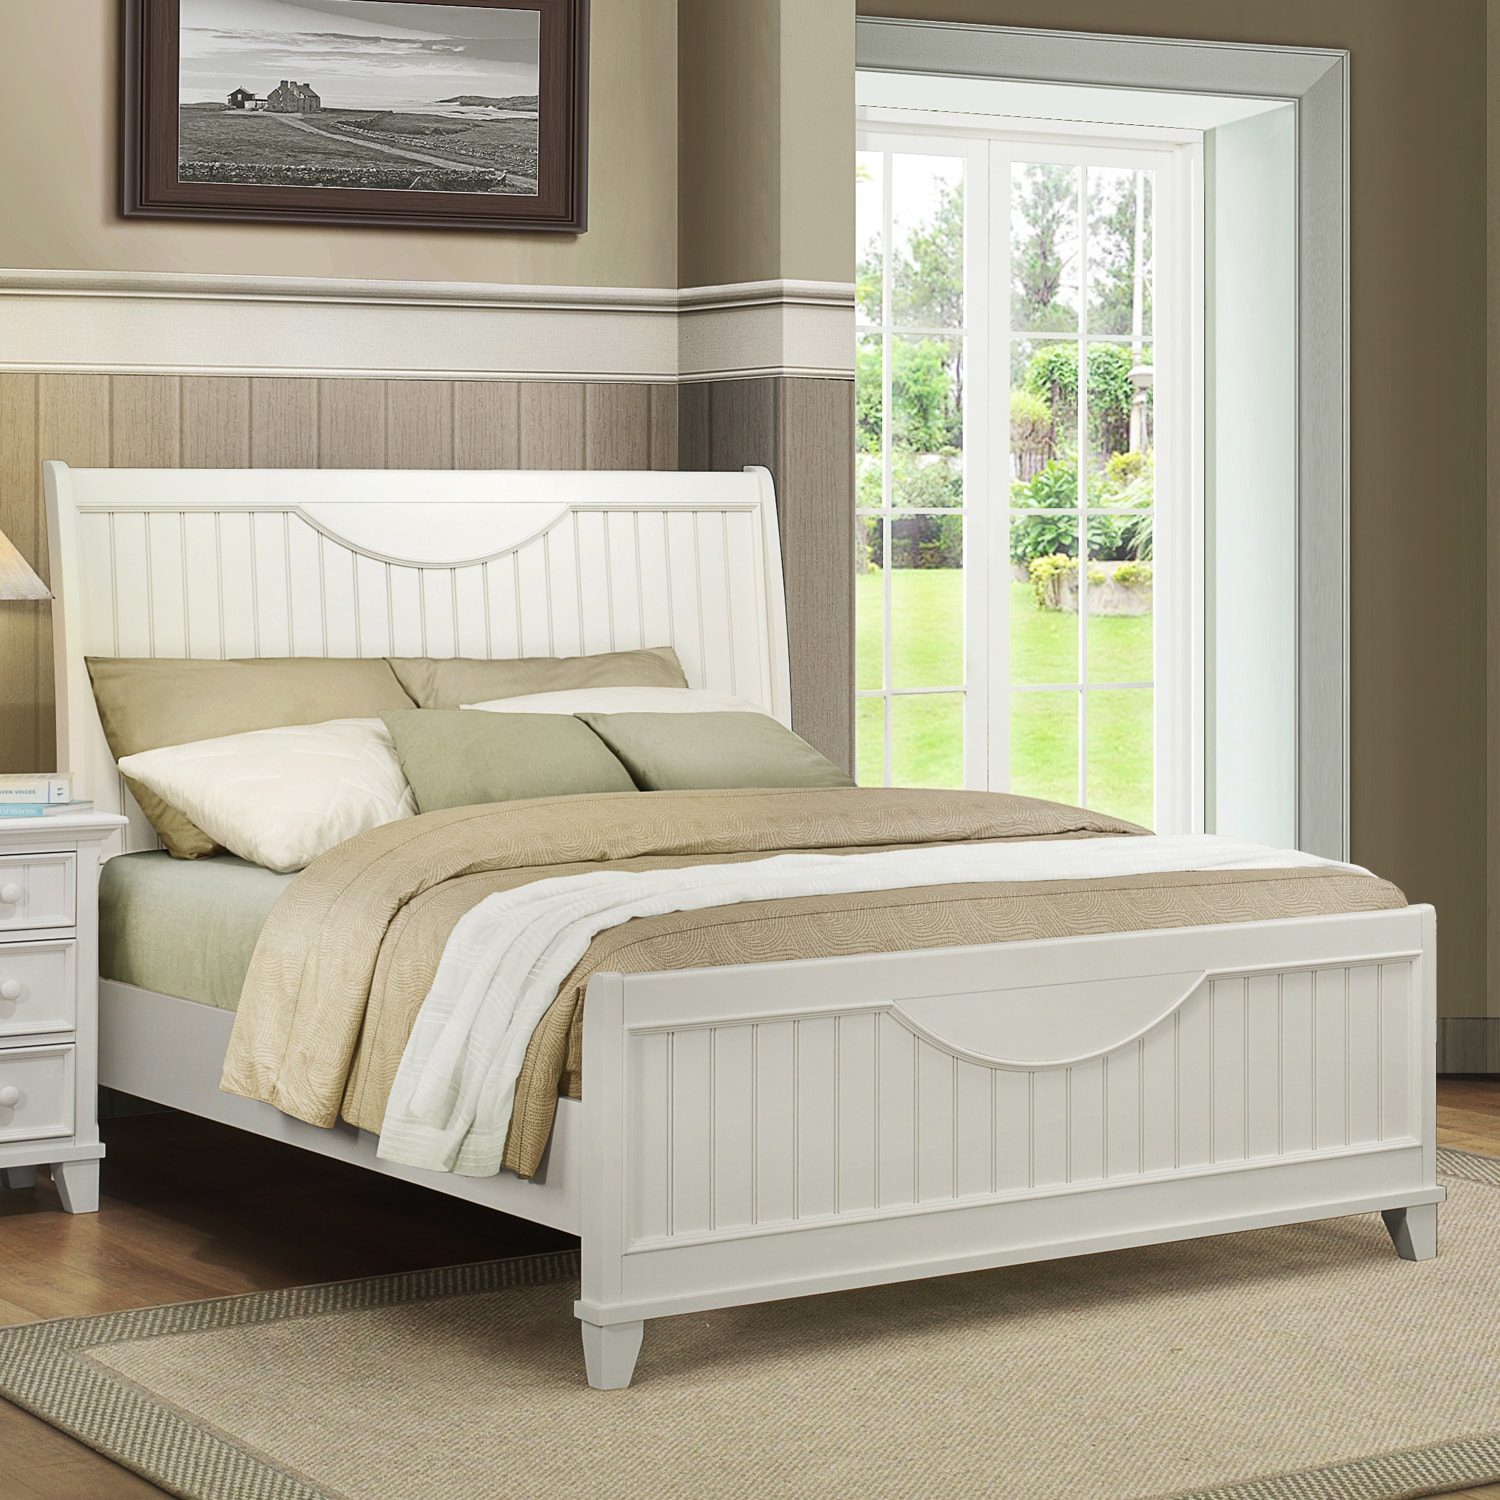 Tribecca Home Alderson Cottage White Beadboard Crescent Shaped Queen Size Bed